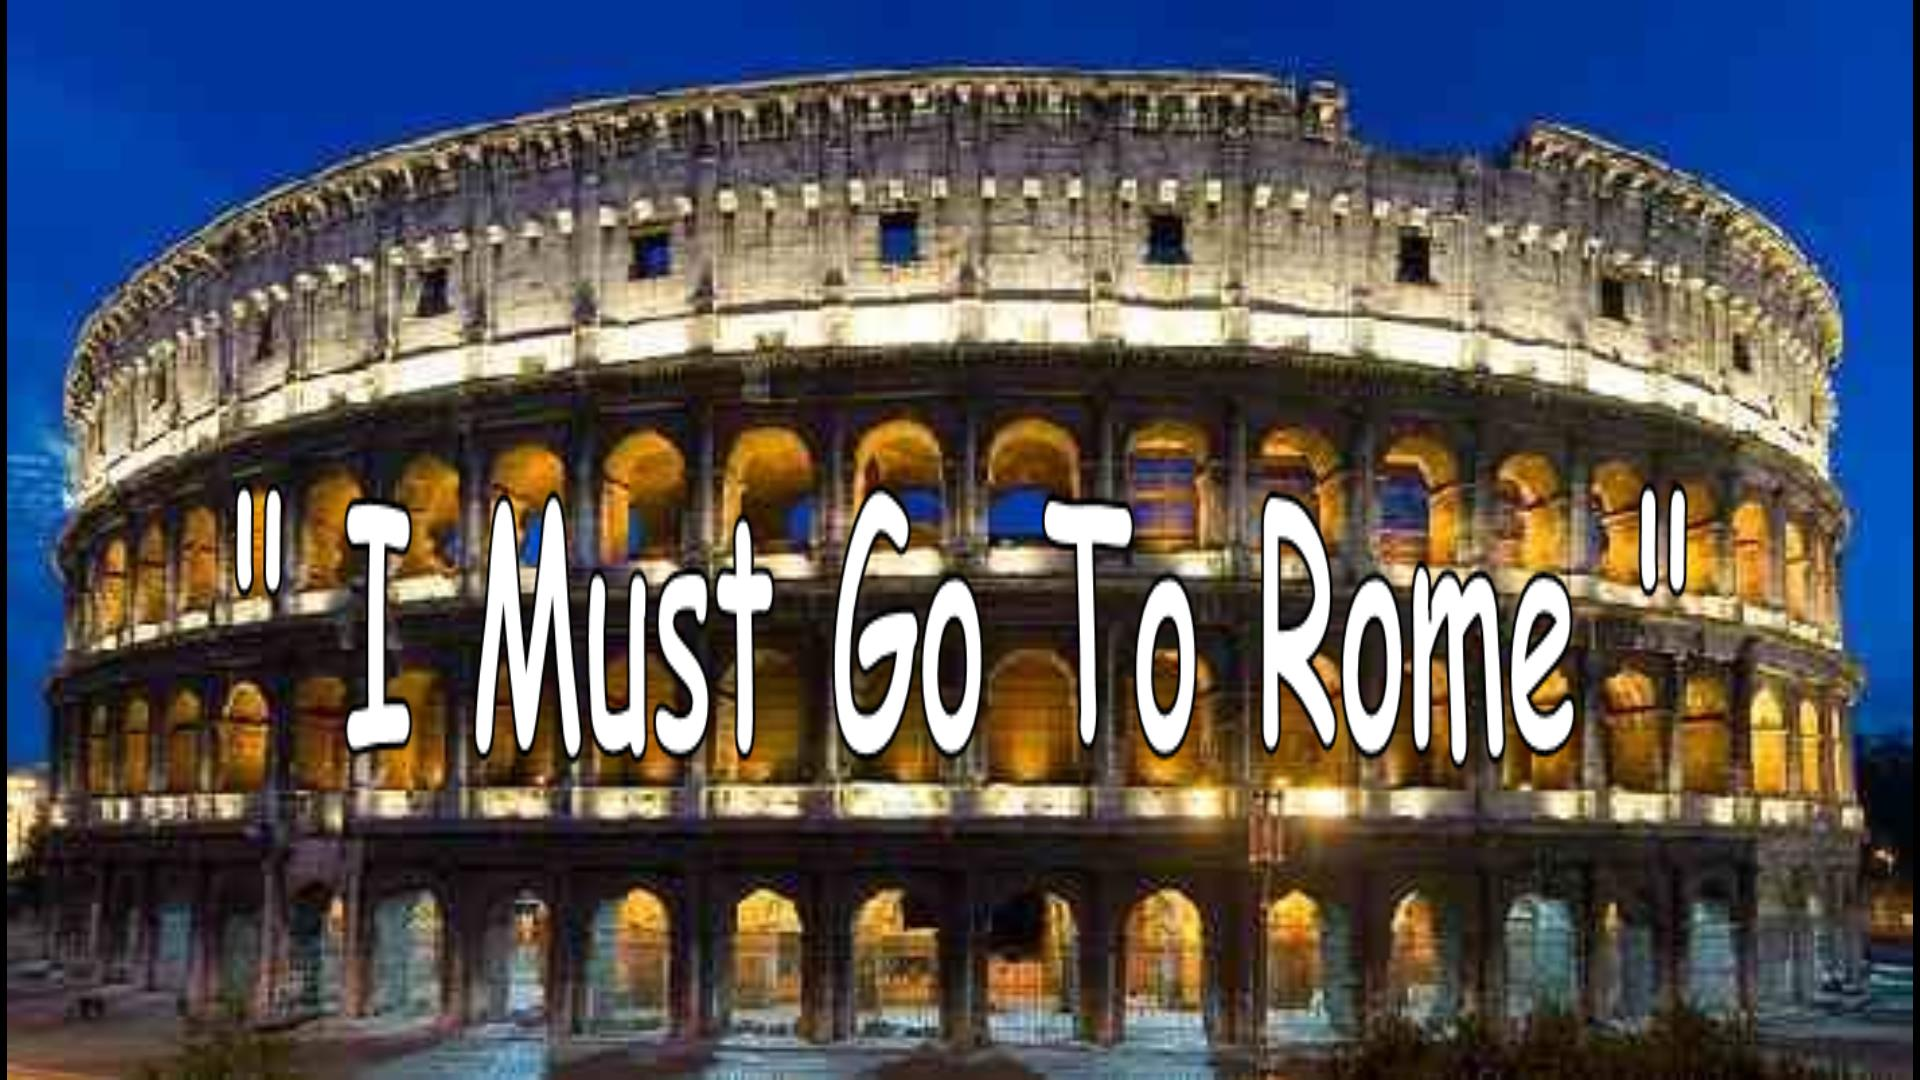 I Must Go To Rome